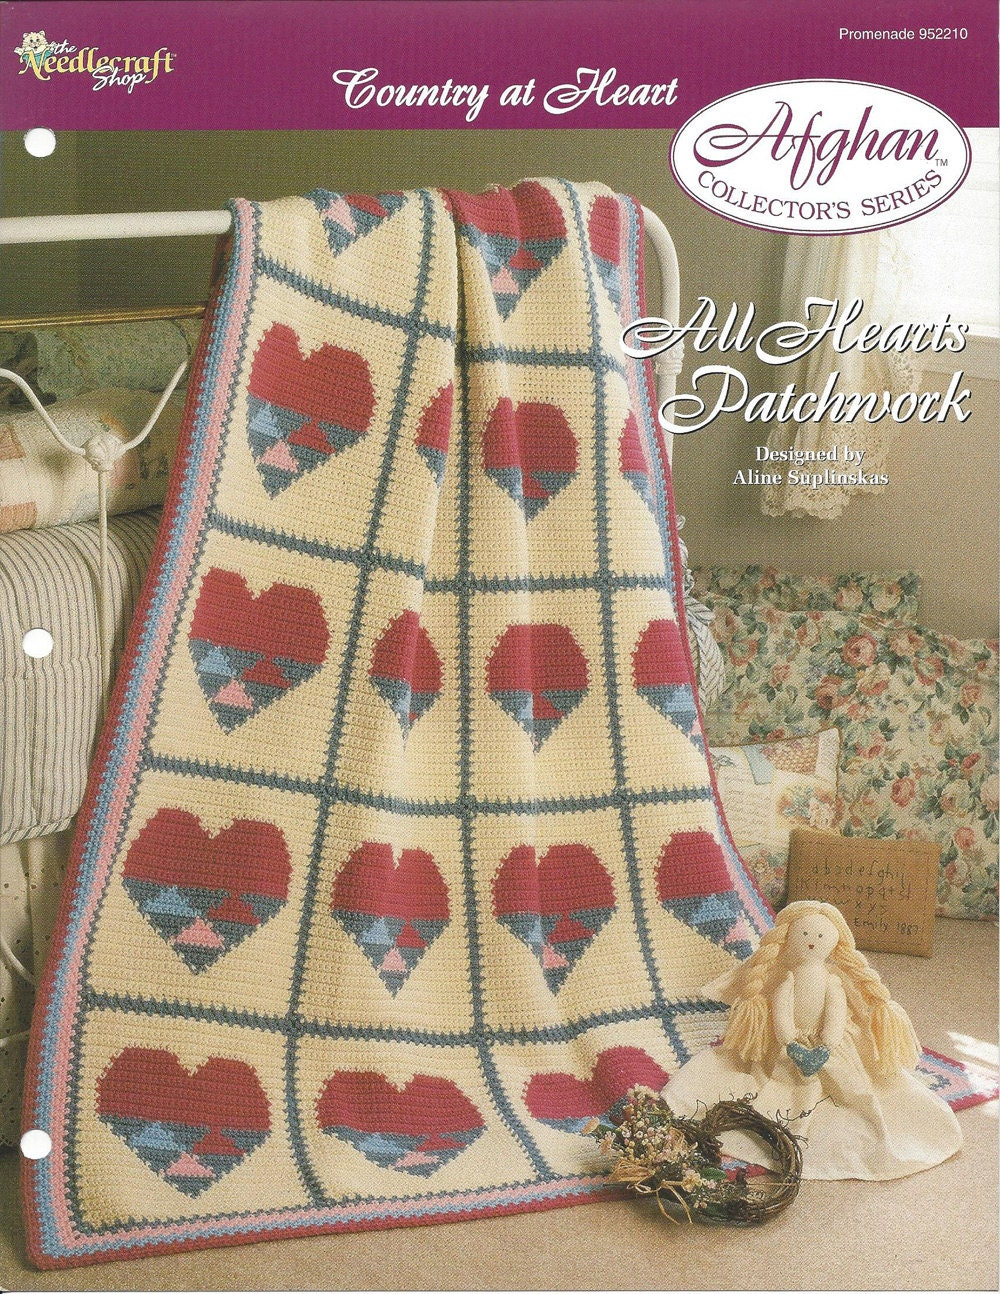 All hearts patchwork afghan collectors series the needlecraft 199 bankloansurffo Choice Image